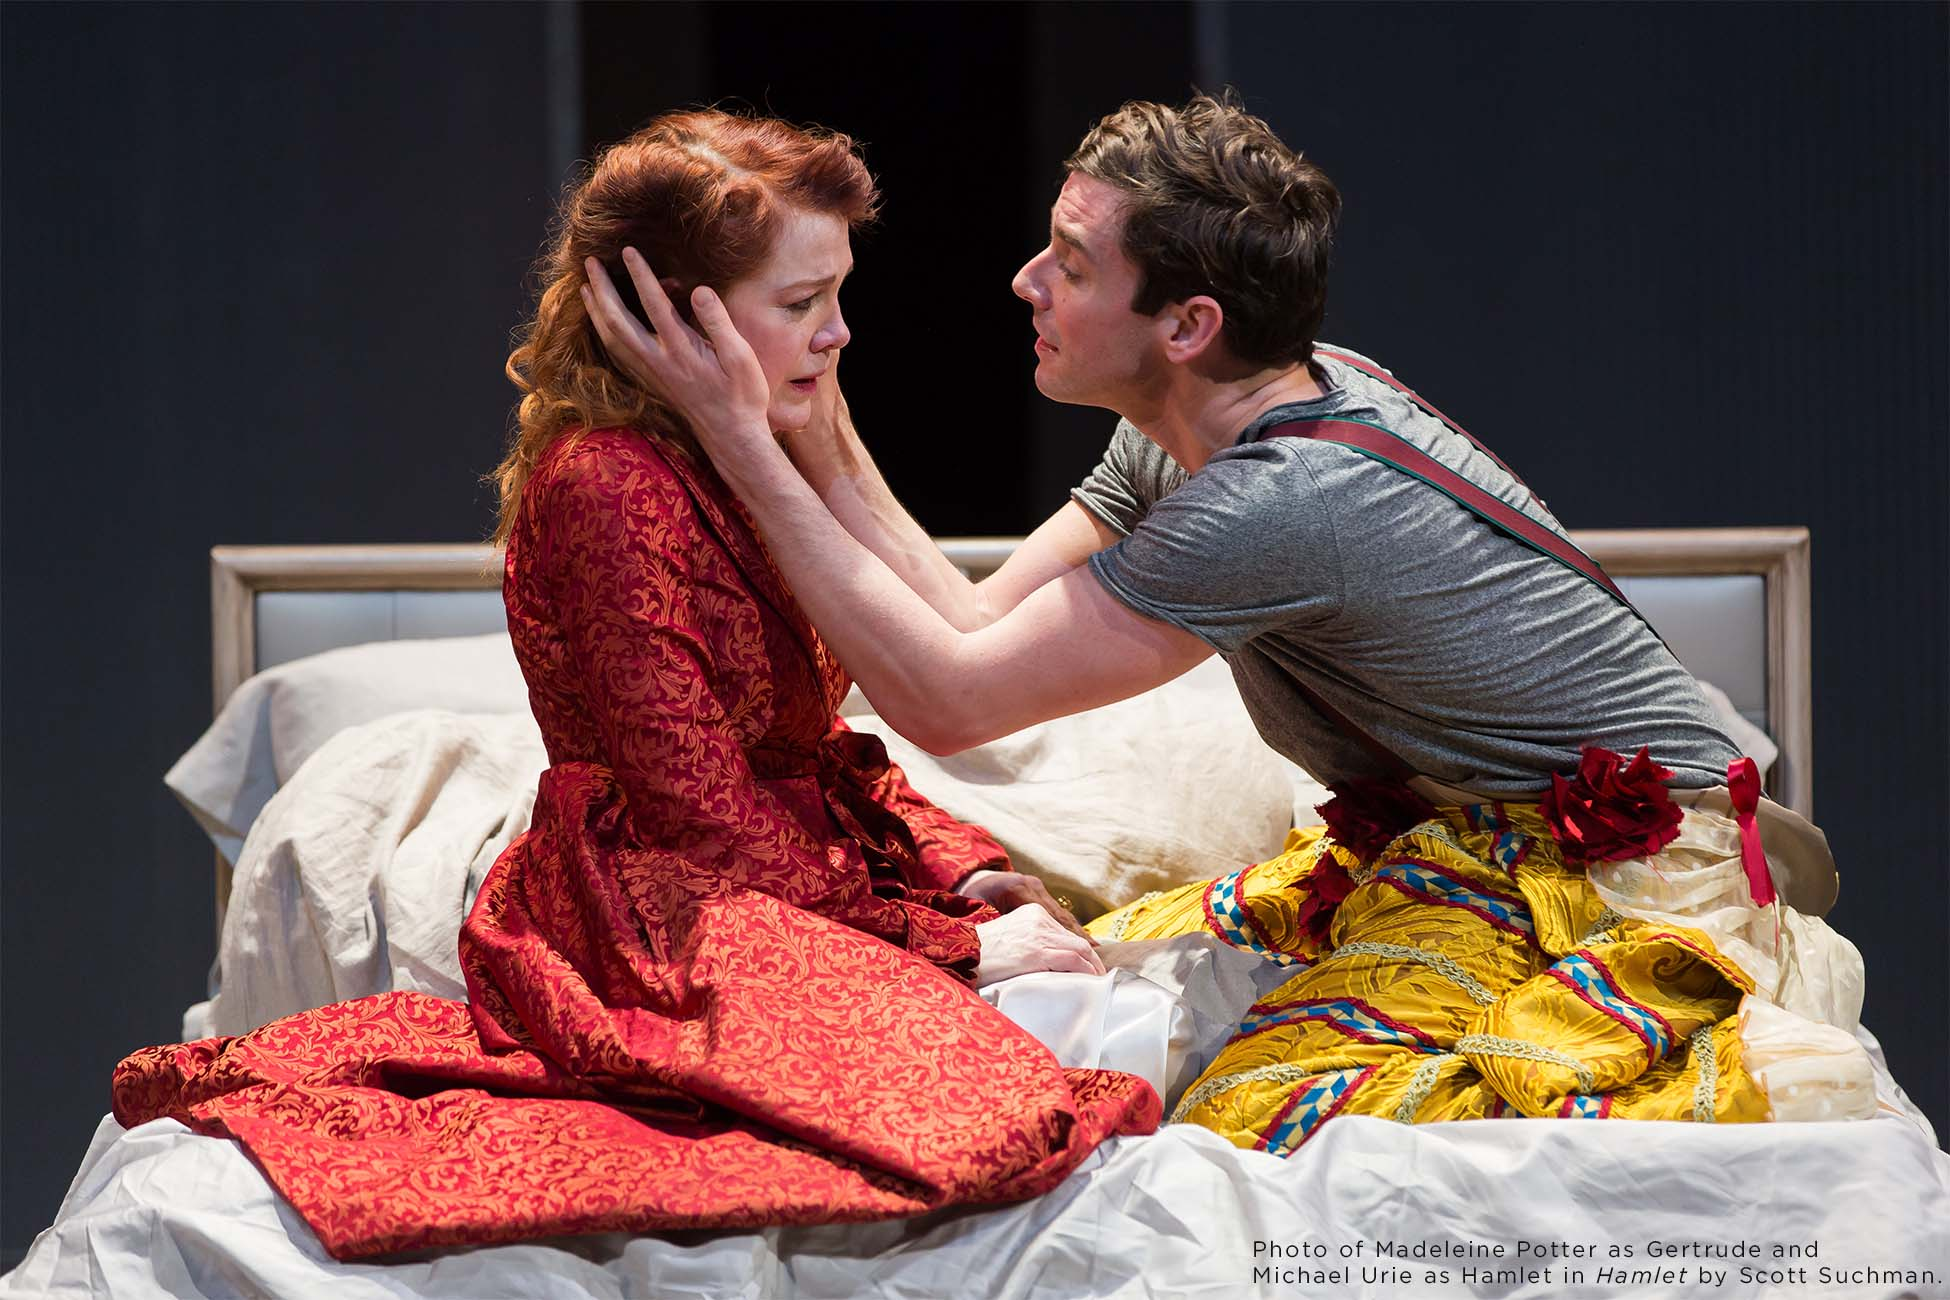 Photo of Madeleine Potter and Michael Urie by Scott Suchman.